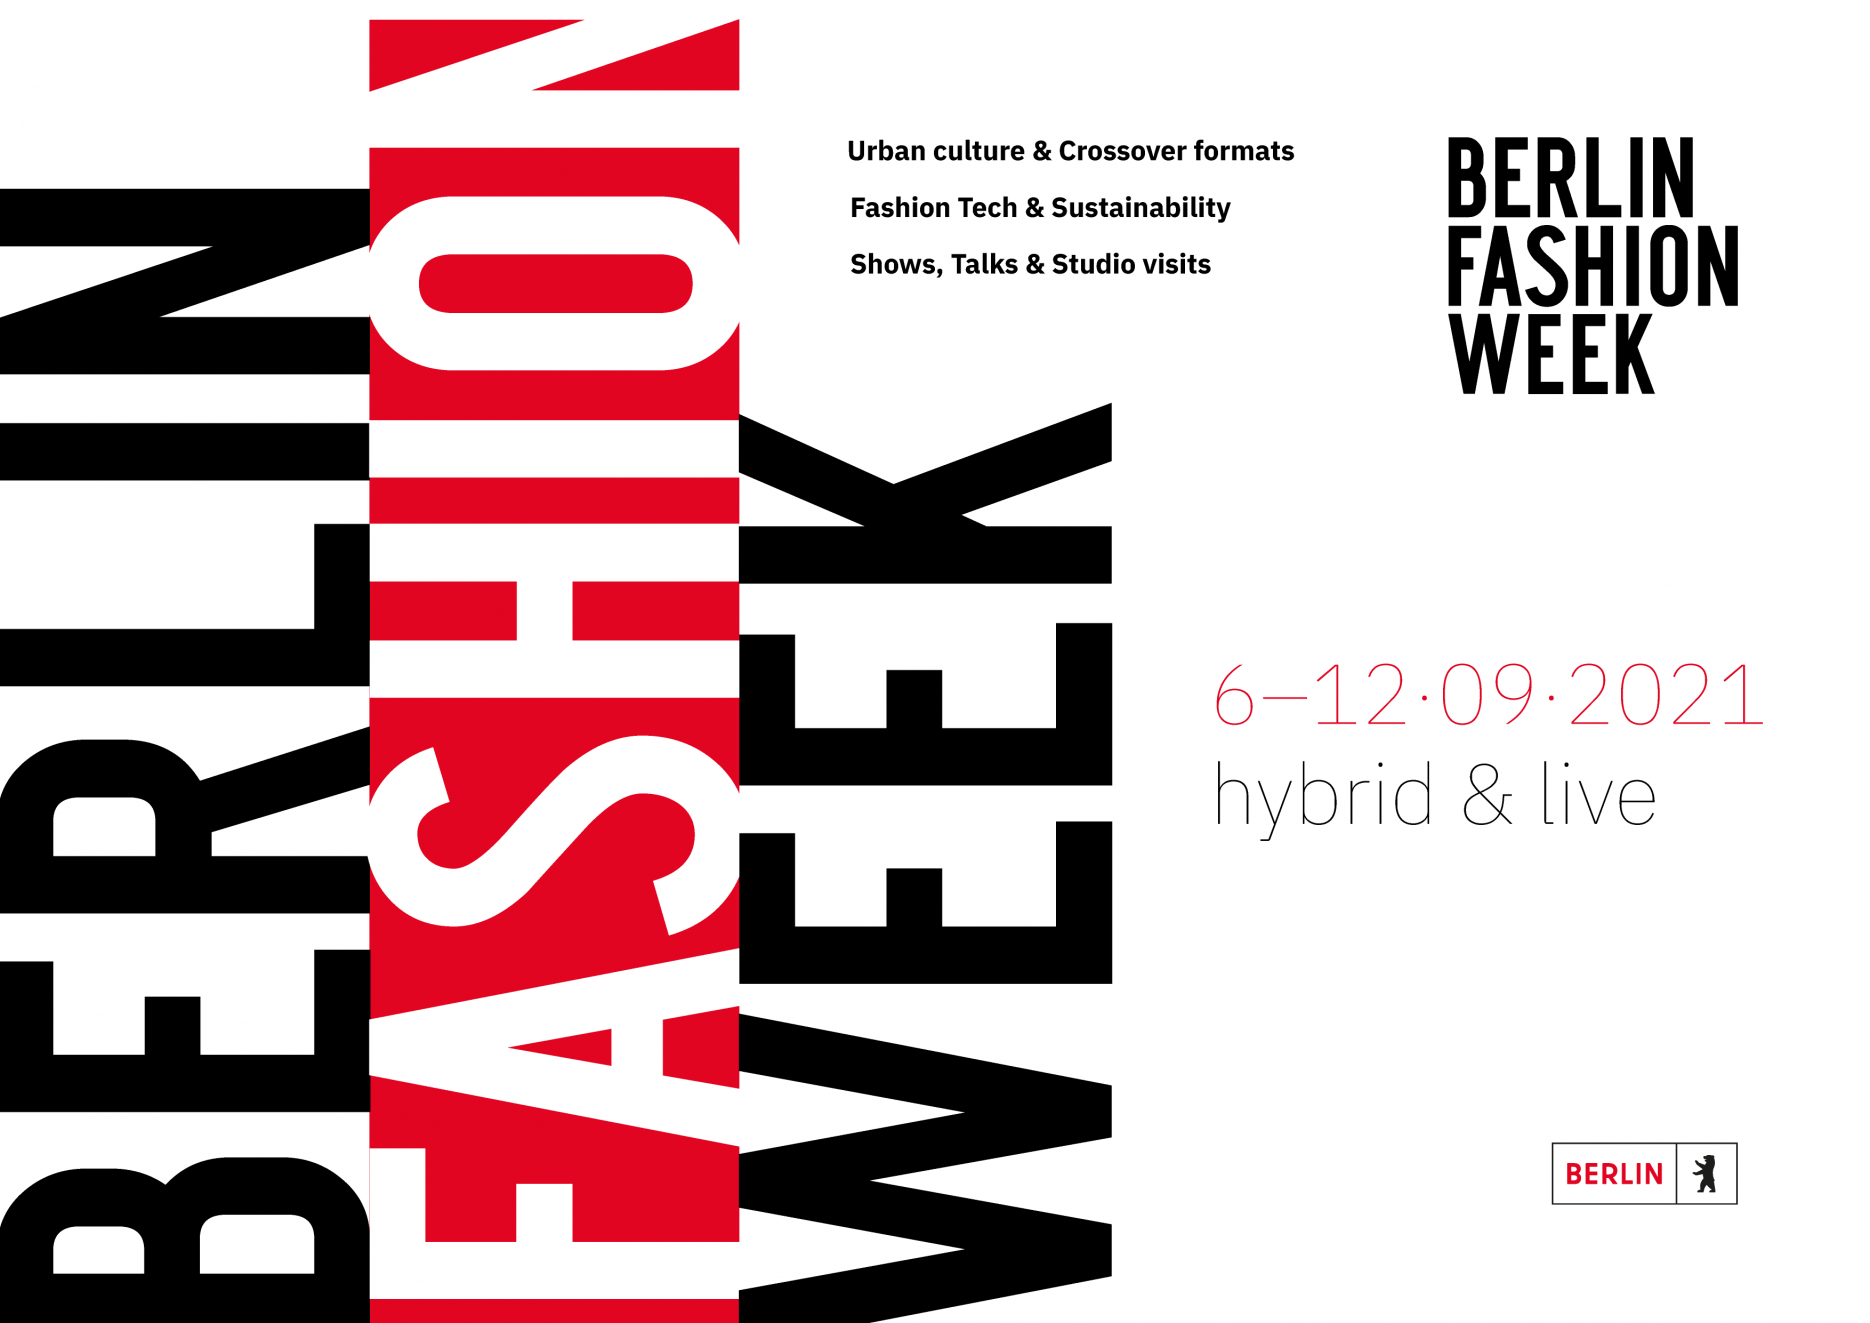 Twice a year, Berlin becomes an international stage for fashion and lifestyle.